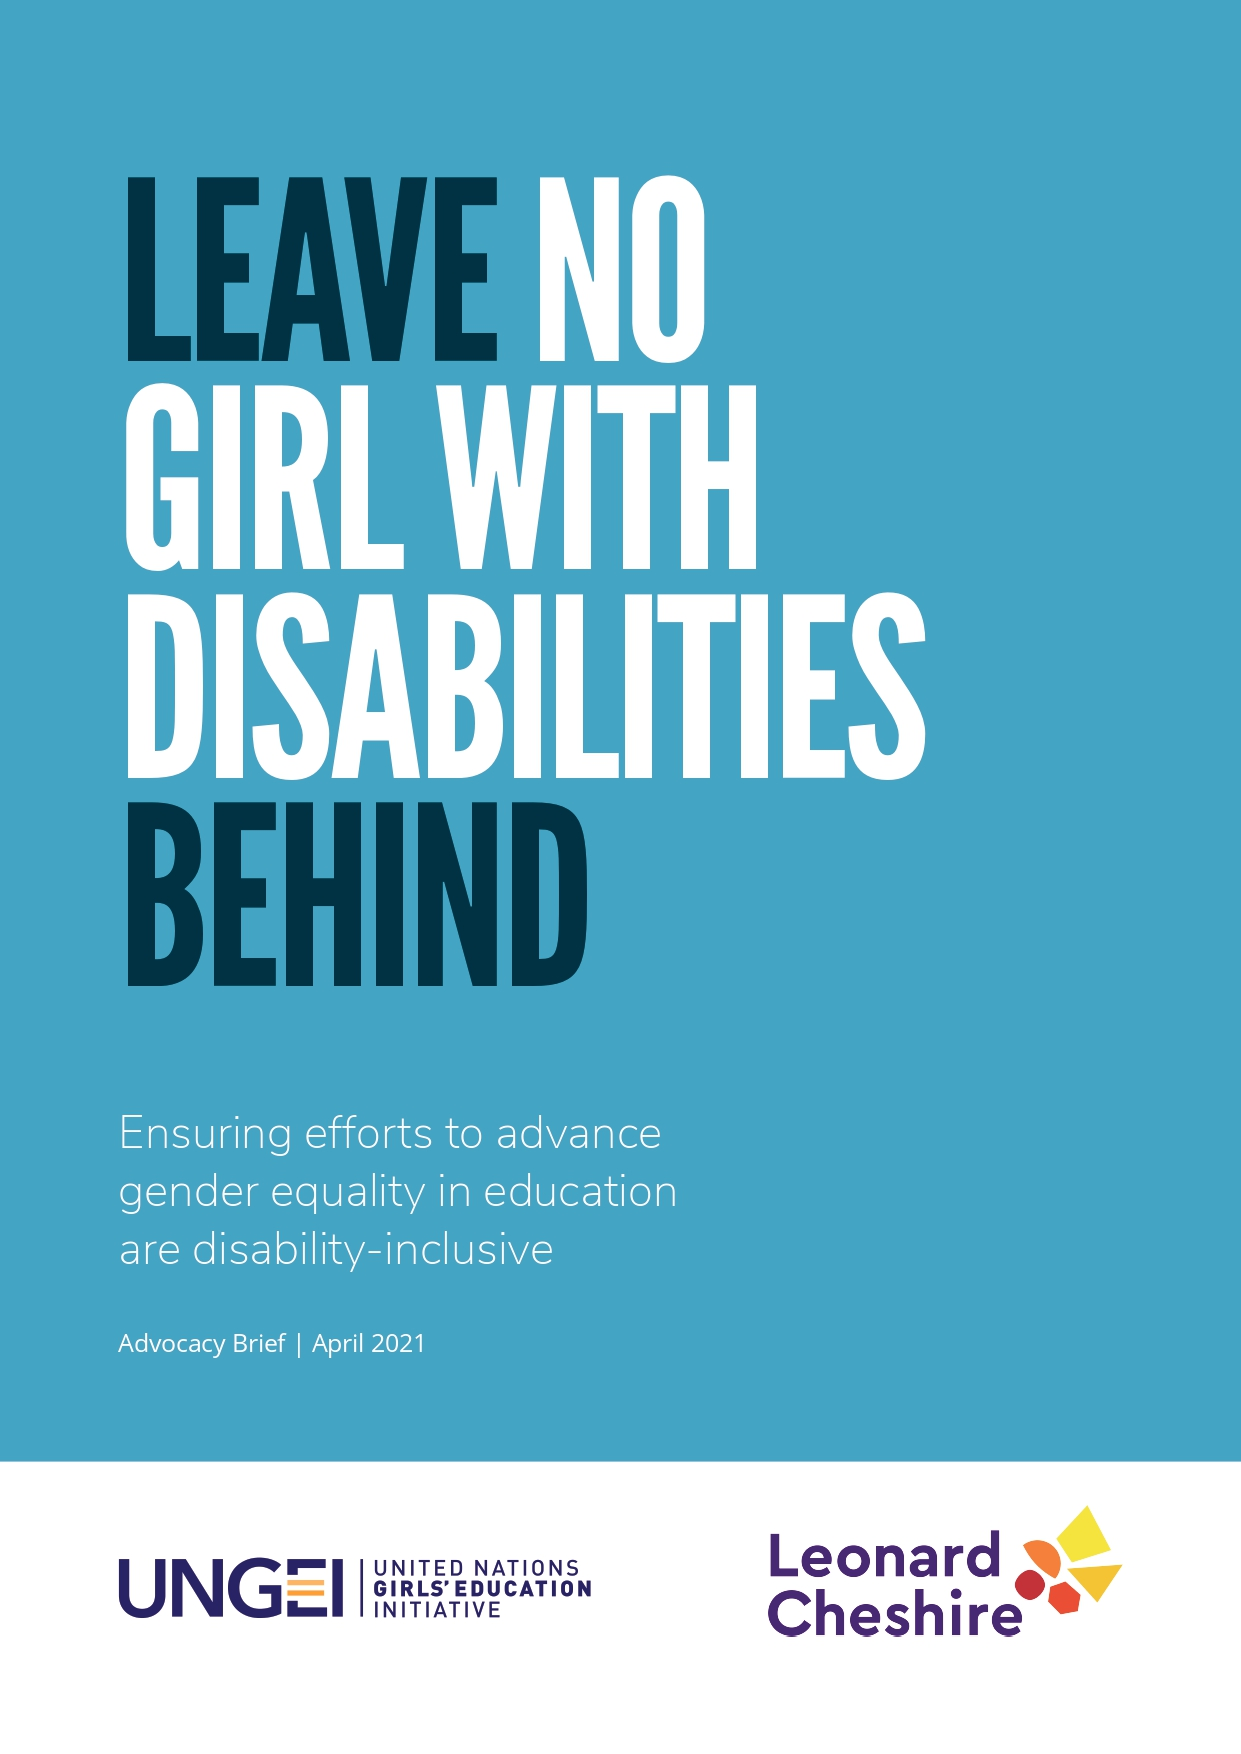 Leave No Girl With Disabilities Behind: Ensuring efforts to advance gender equality in education are disability-inclusive